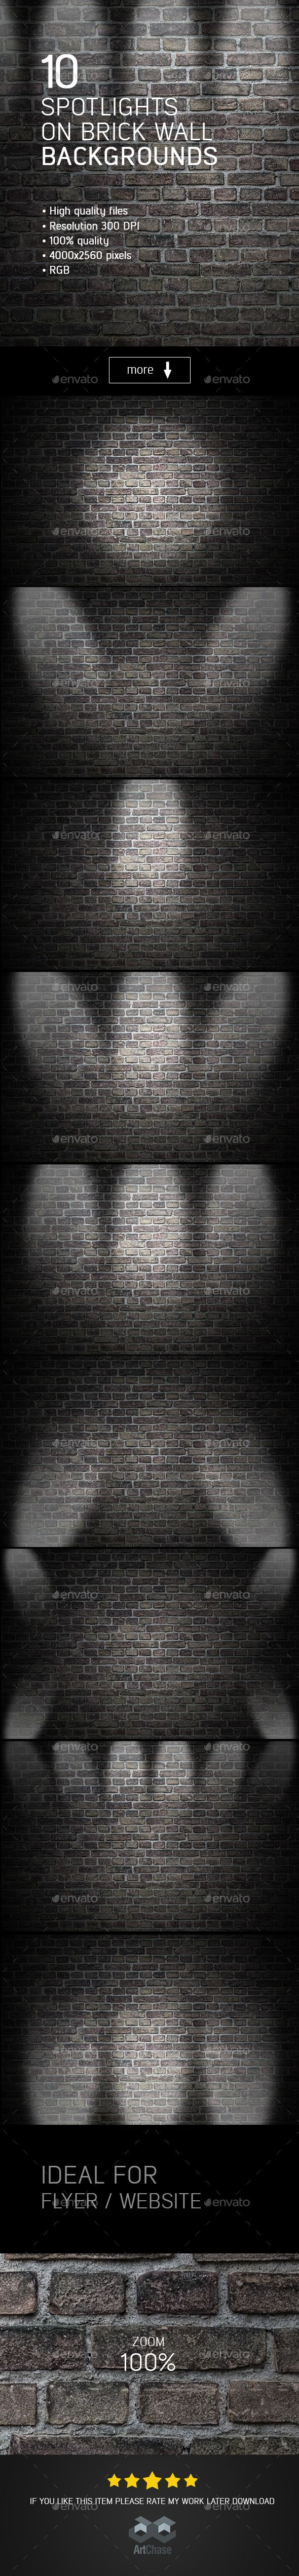 Download here: https://graphicriver.net/item/10-spotlights-on-brick-wall-backgrounds/21002666